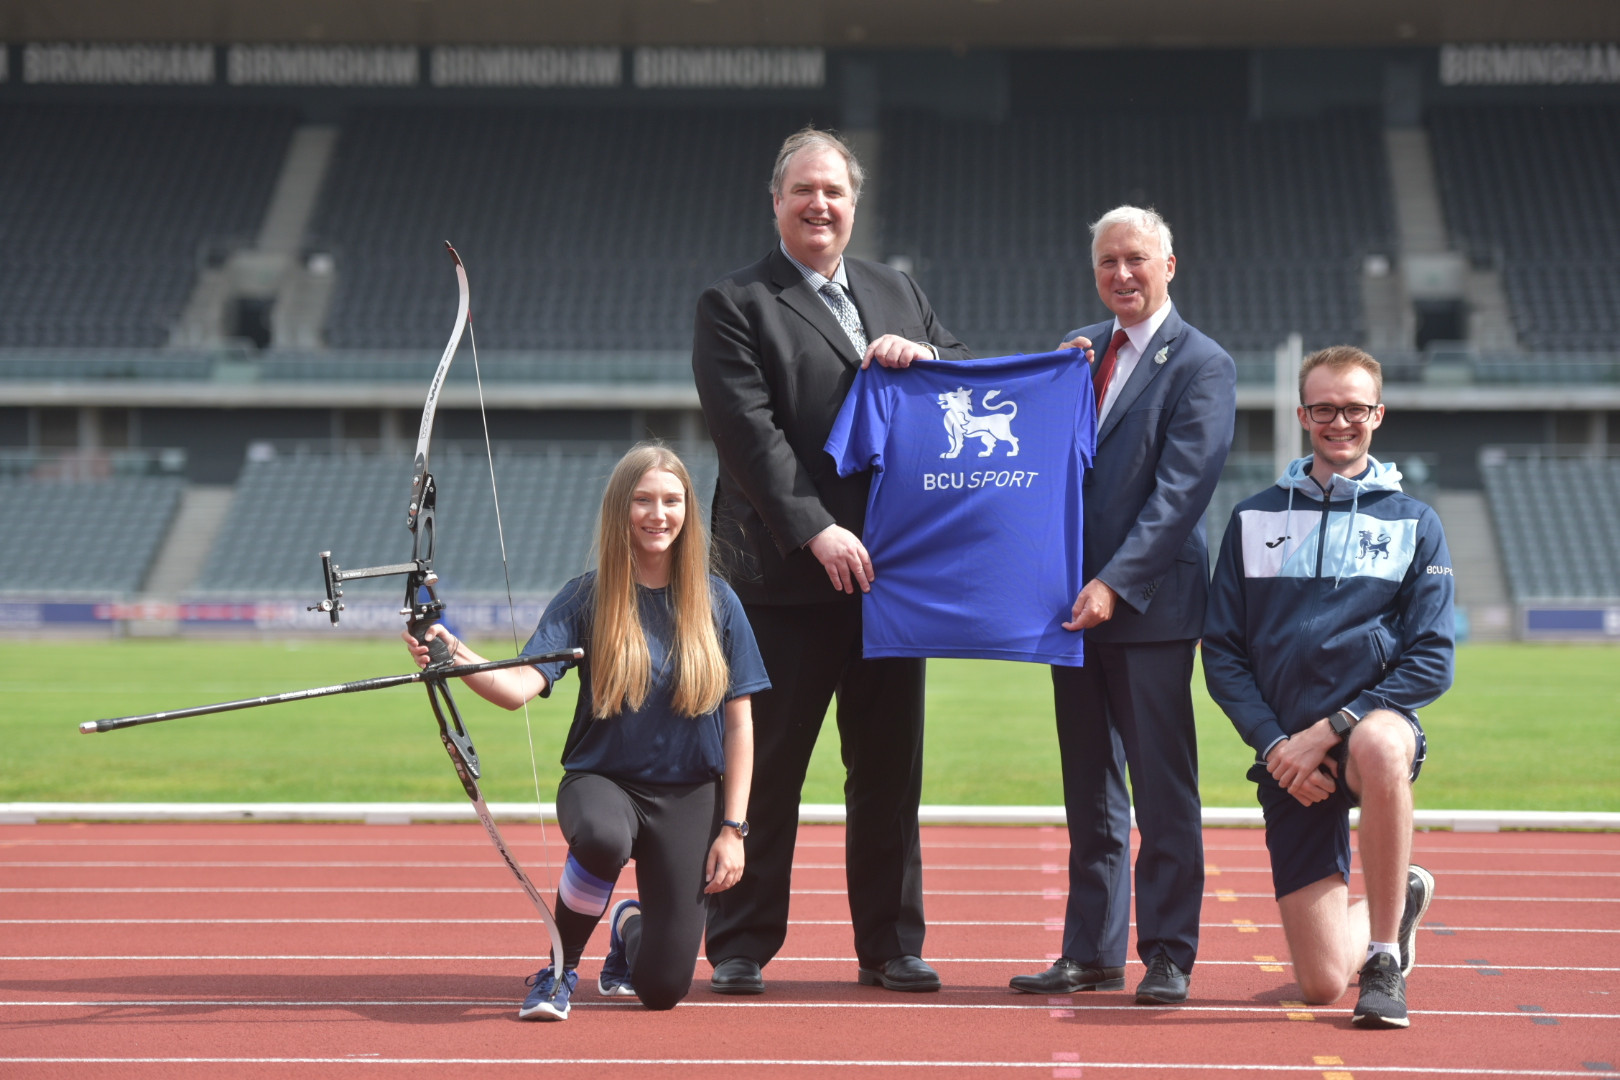 The Alexander Stadium will accomodate up to 1,000 Birmingham City University students after the 2022 Commonwealth Games to be held in the city ©Nick Robinson - Birmingham City University